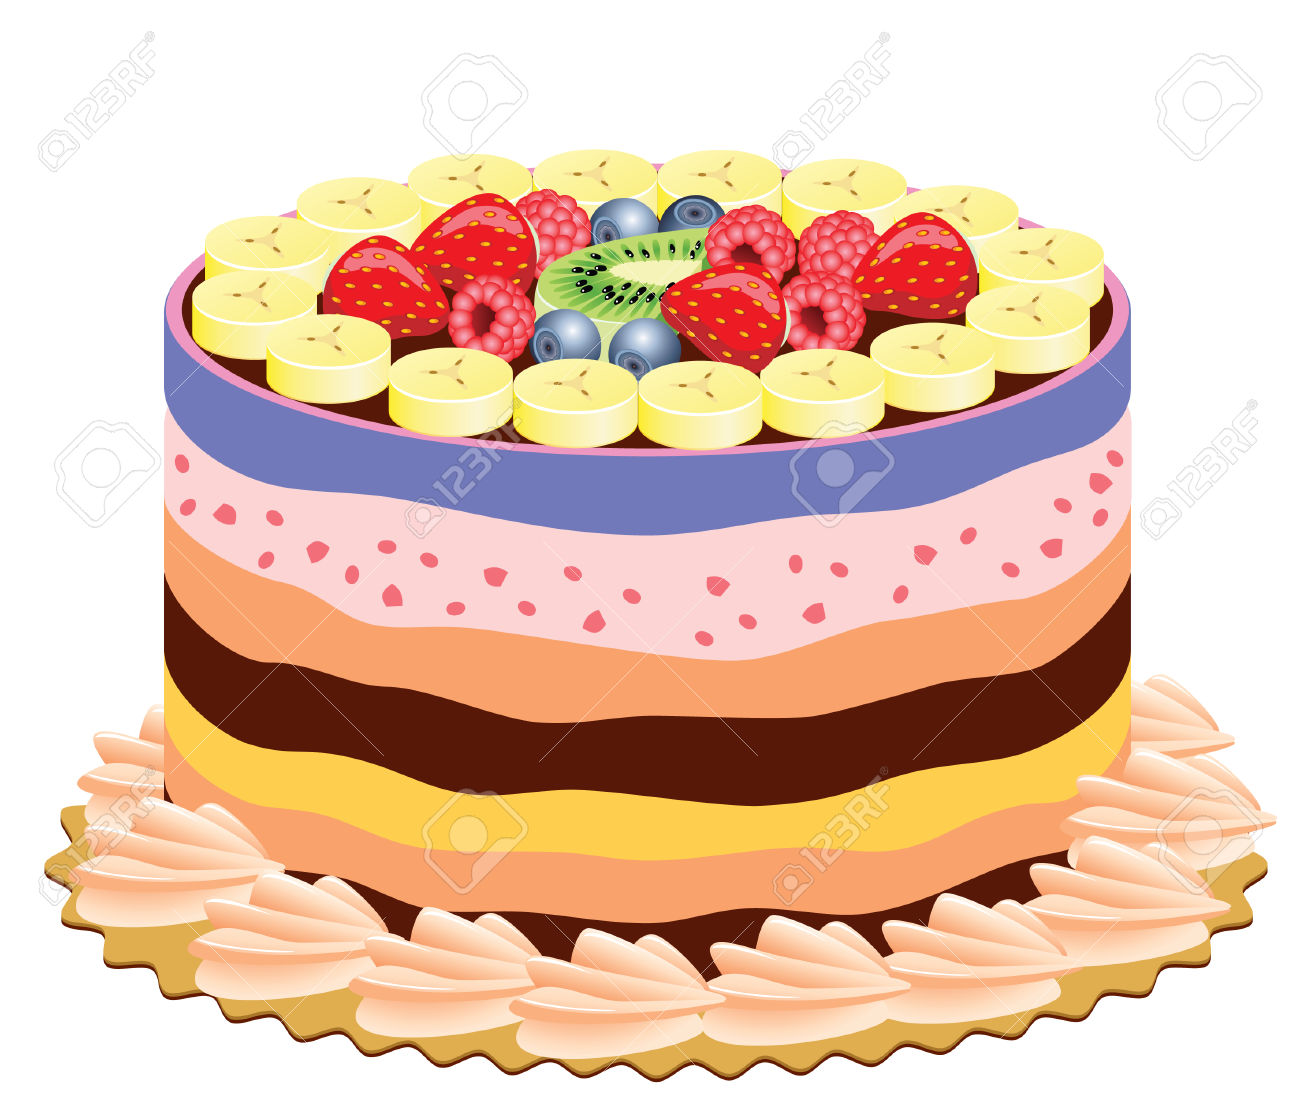 Vector Delicious Cake With Fruits Royalty Free Cliparts, Vectors.